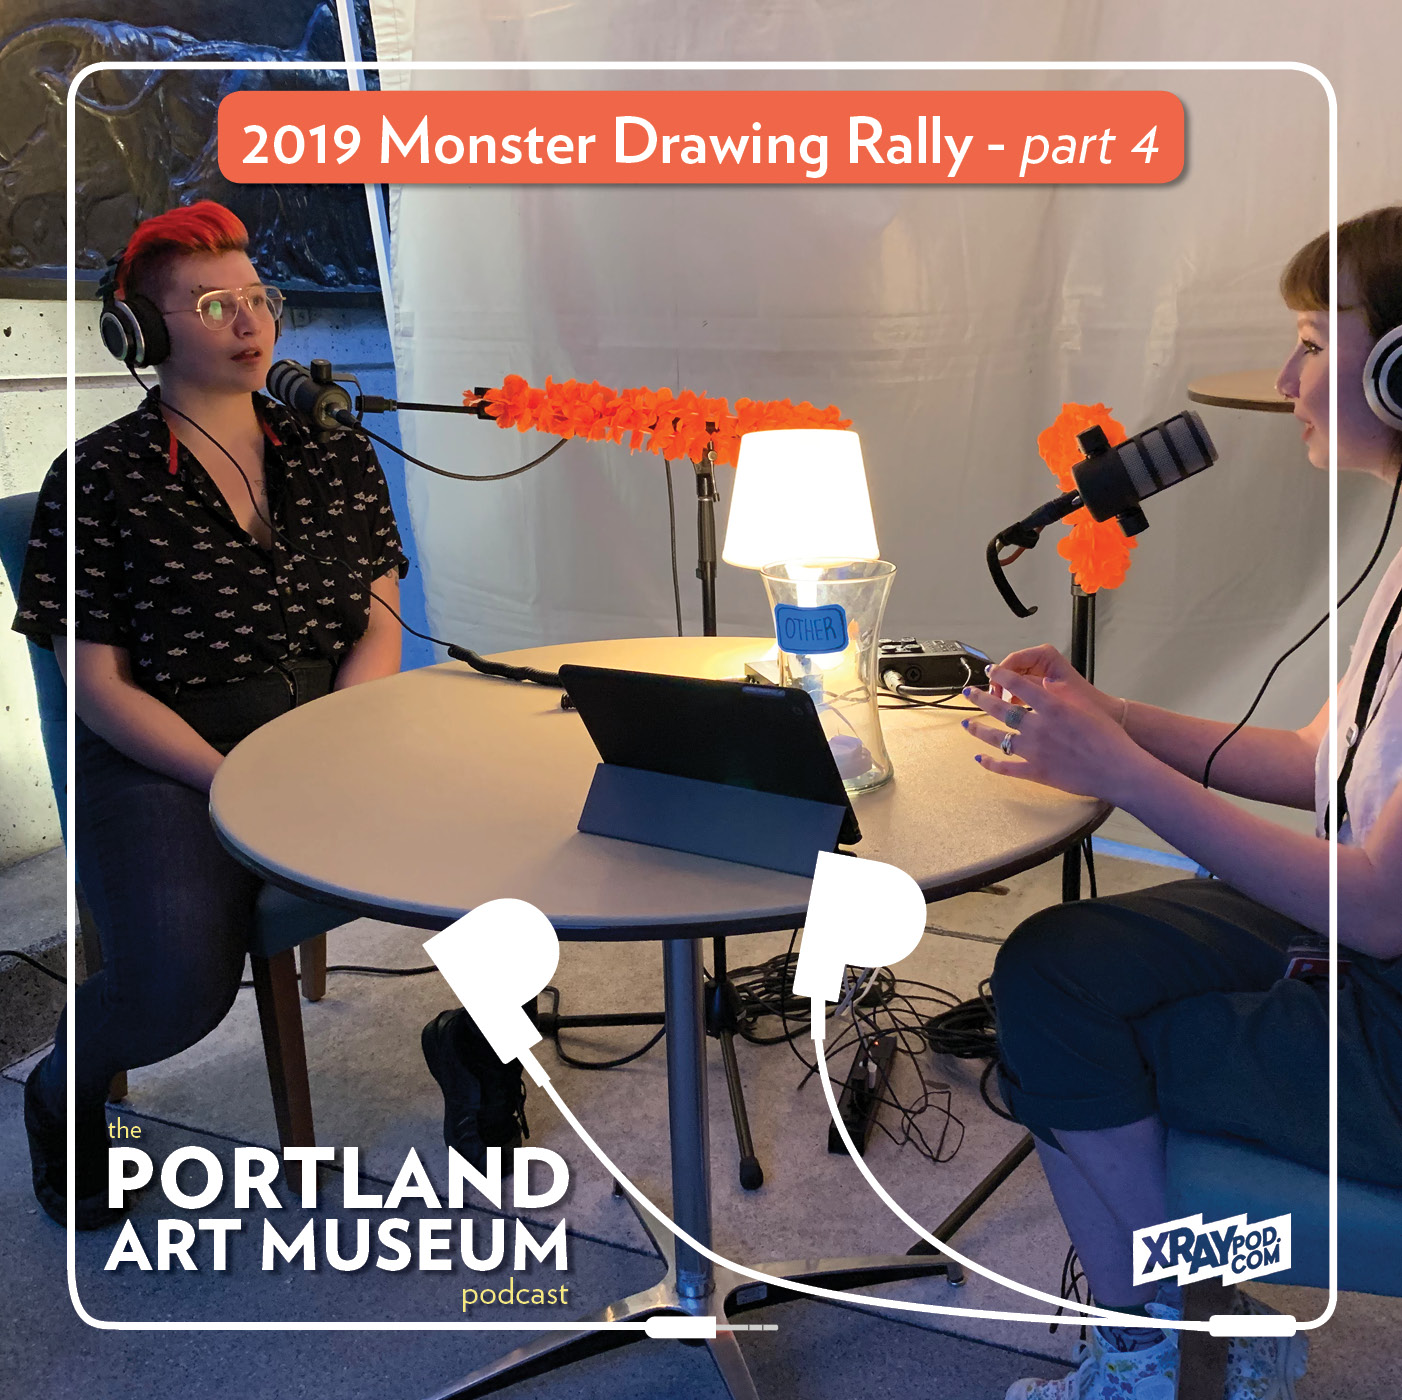 2019 Monster Drawing Rally – part 4